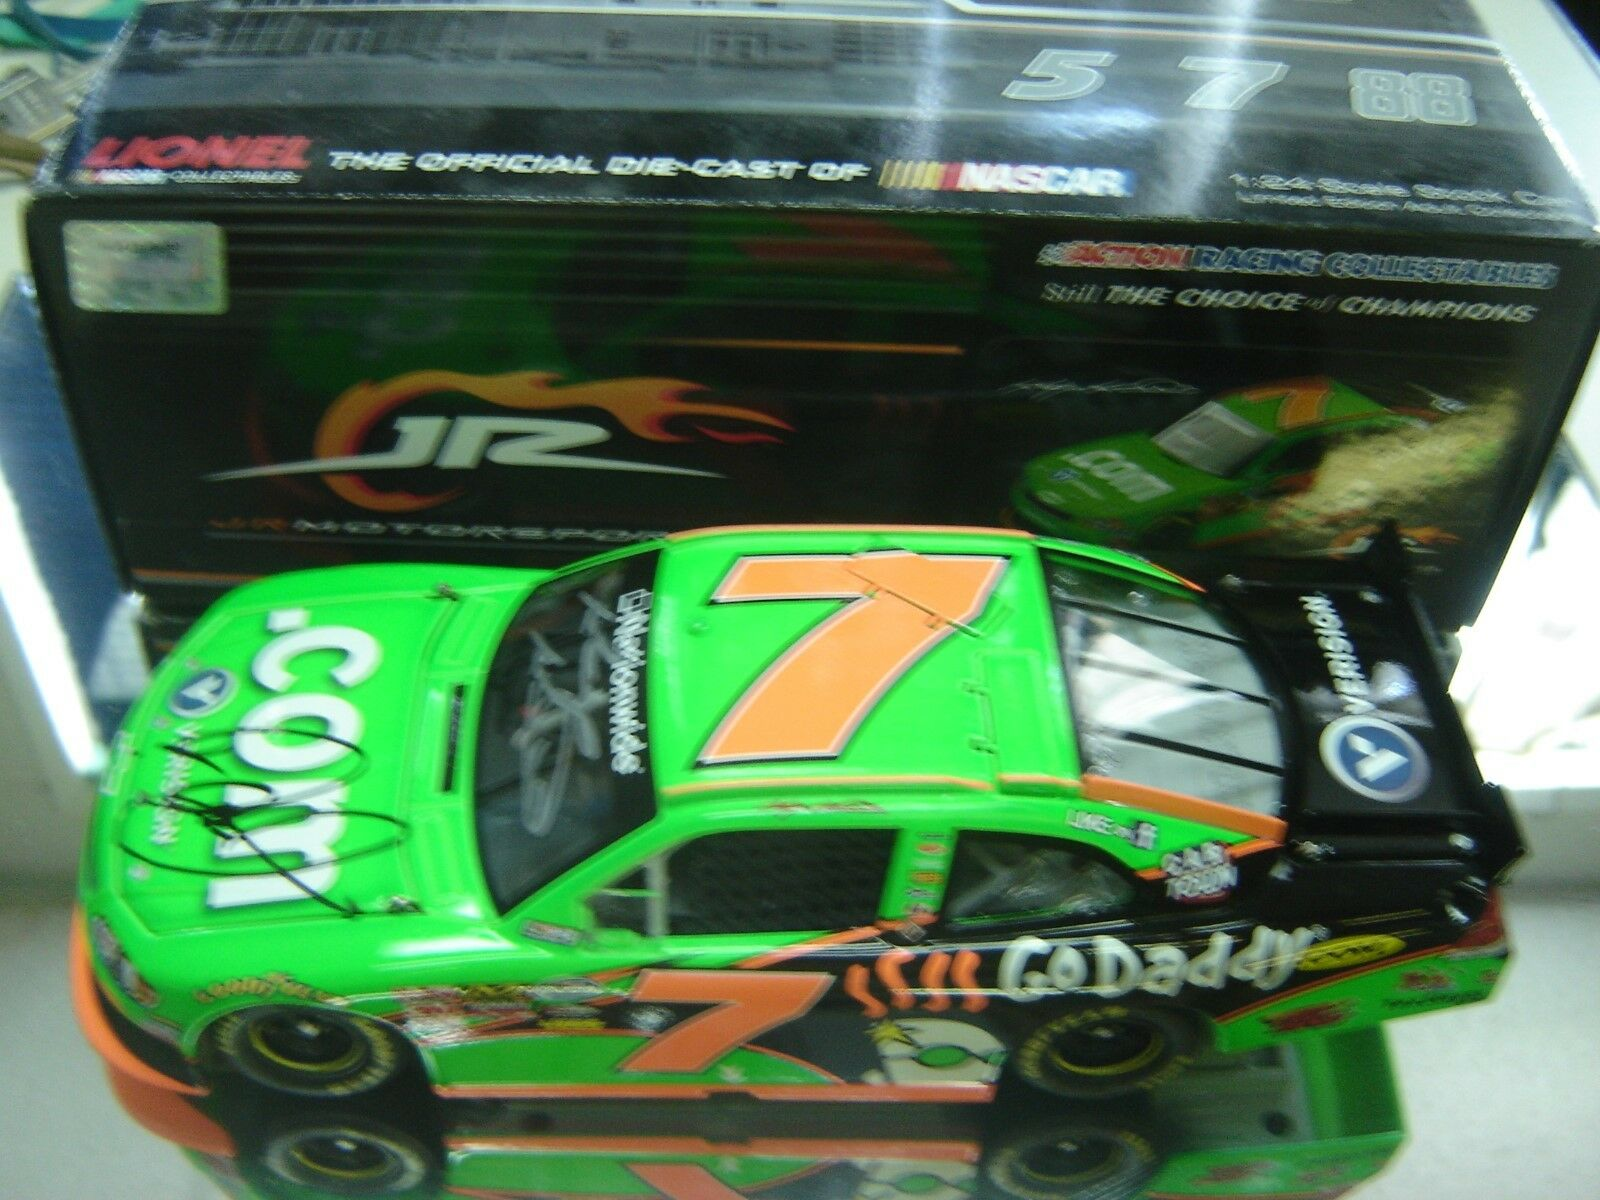 RARE    2011 KASEY KAHNE GODADDY.COM DOUBLE SIGNED KASEY & DALE JR 1 24 ACTION